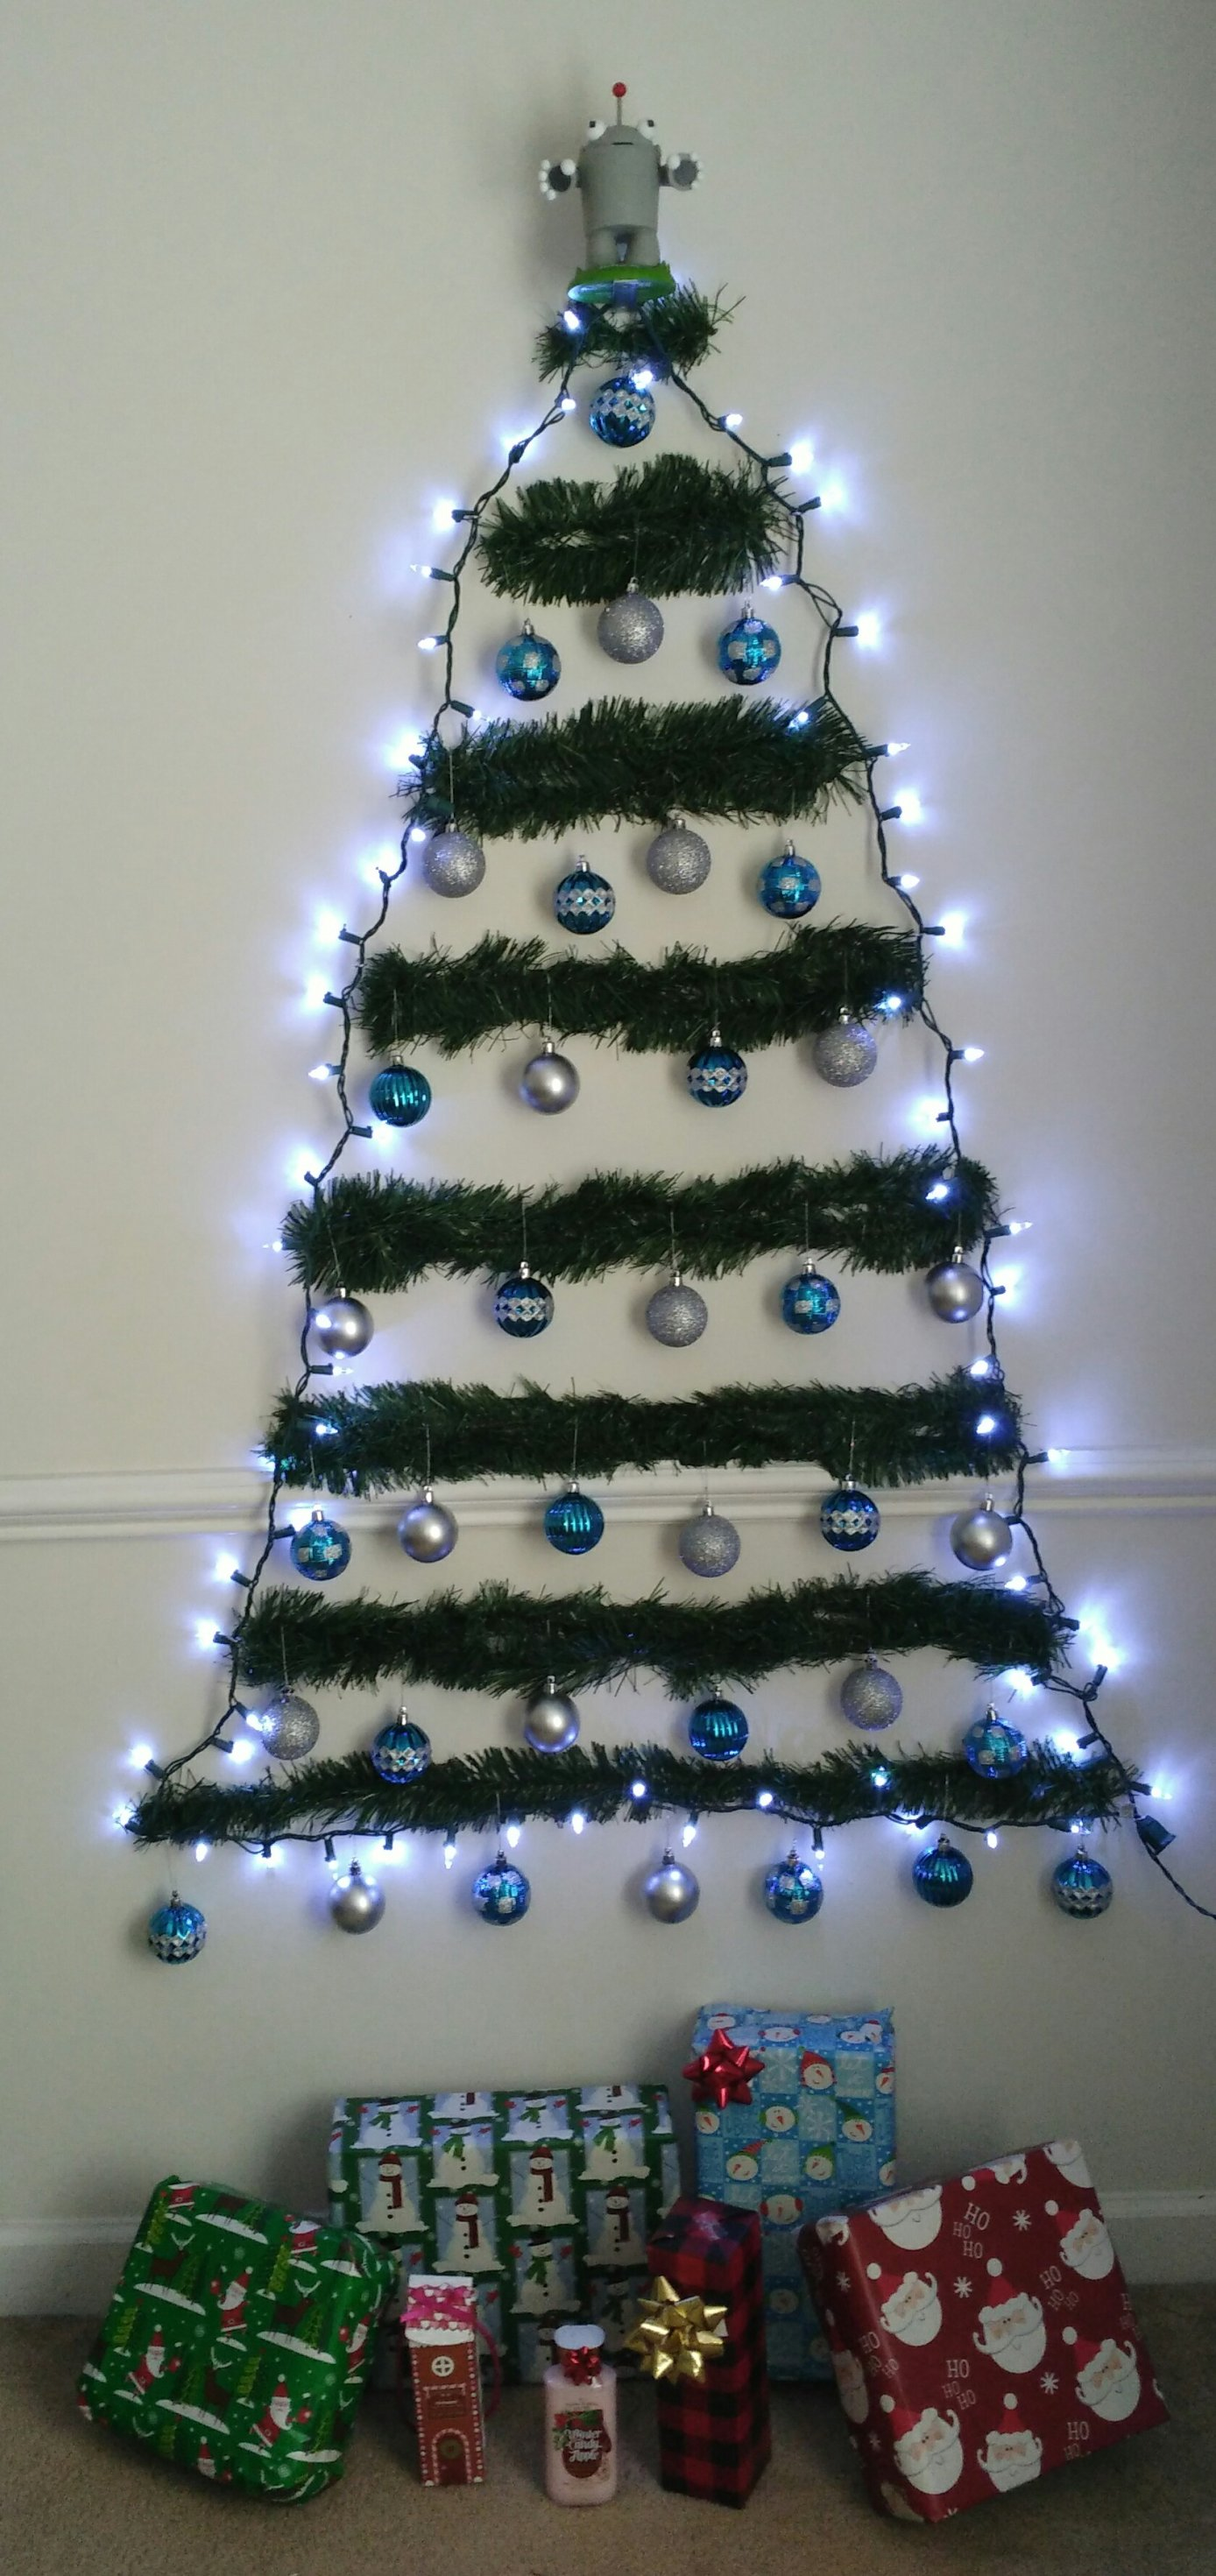 Moz inspired SEO Hero Christmas Tree